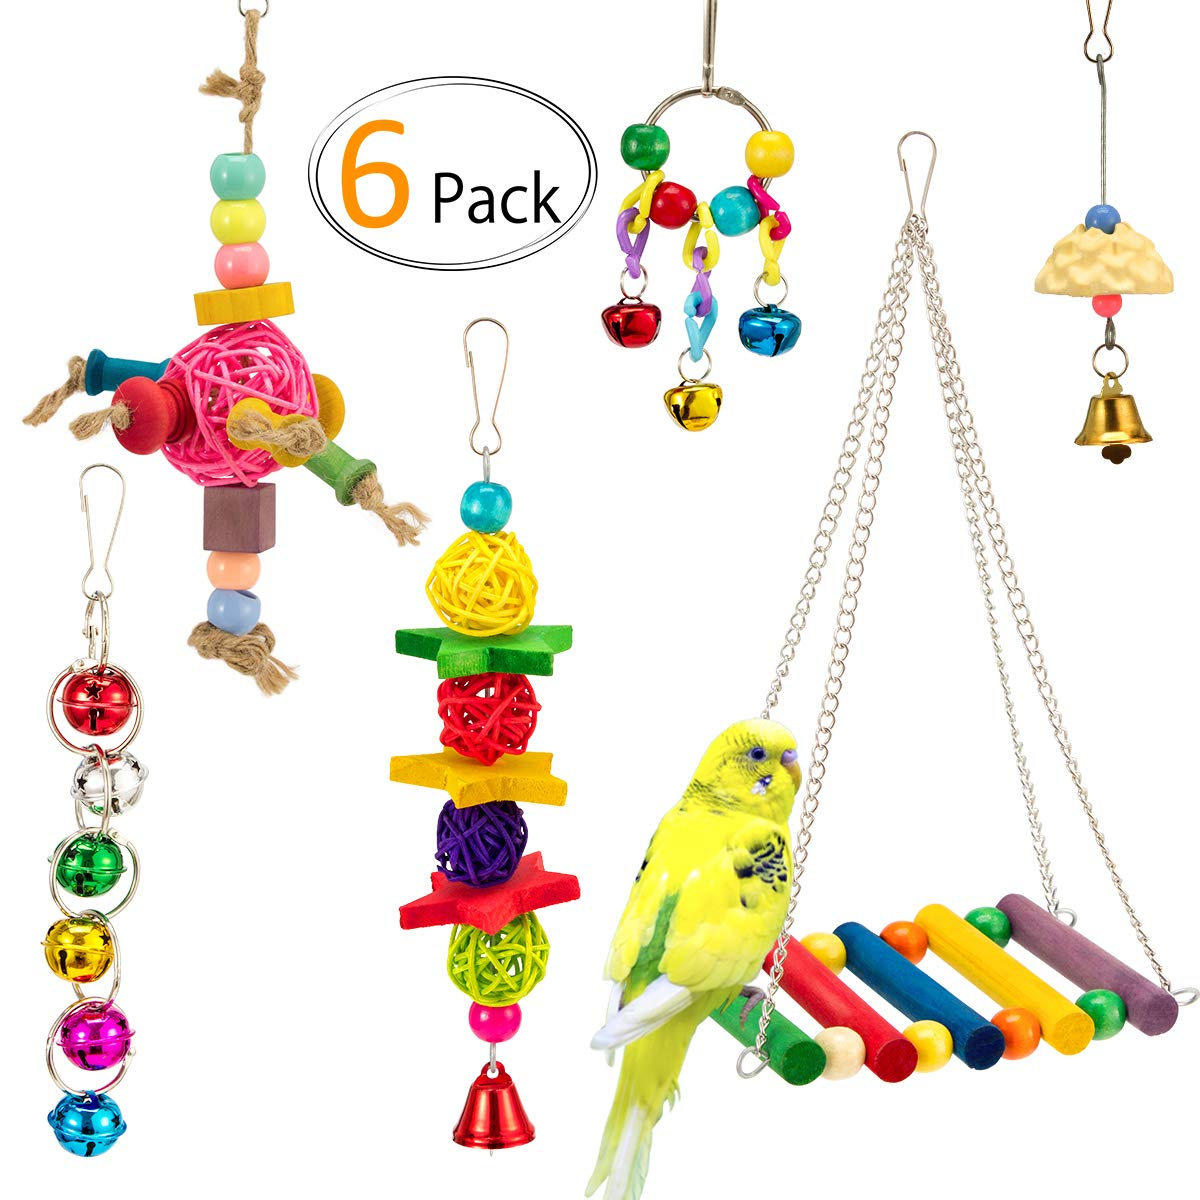 MEWTOGO 6 PCS Bird Toys - Bird Swing+Hanging Bells+Small Rattan Balls+Parrot Chewing Toy+Bird Beak Grinding Stone for Parakeets,Cockatiels,Conures and Lovebirds